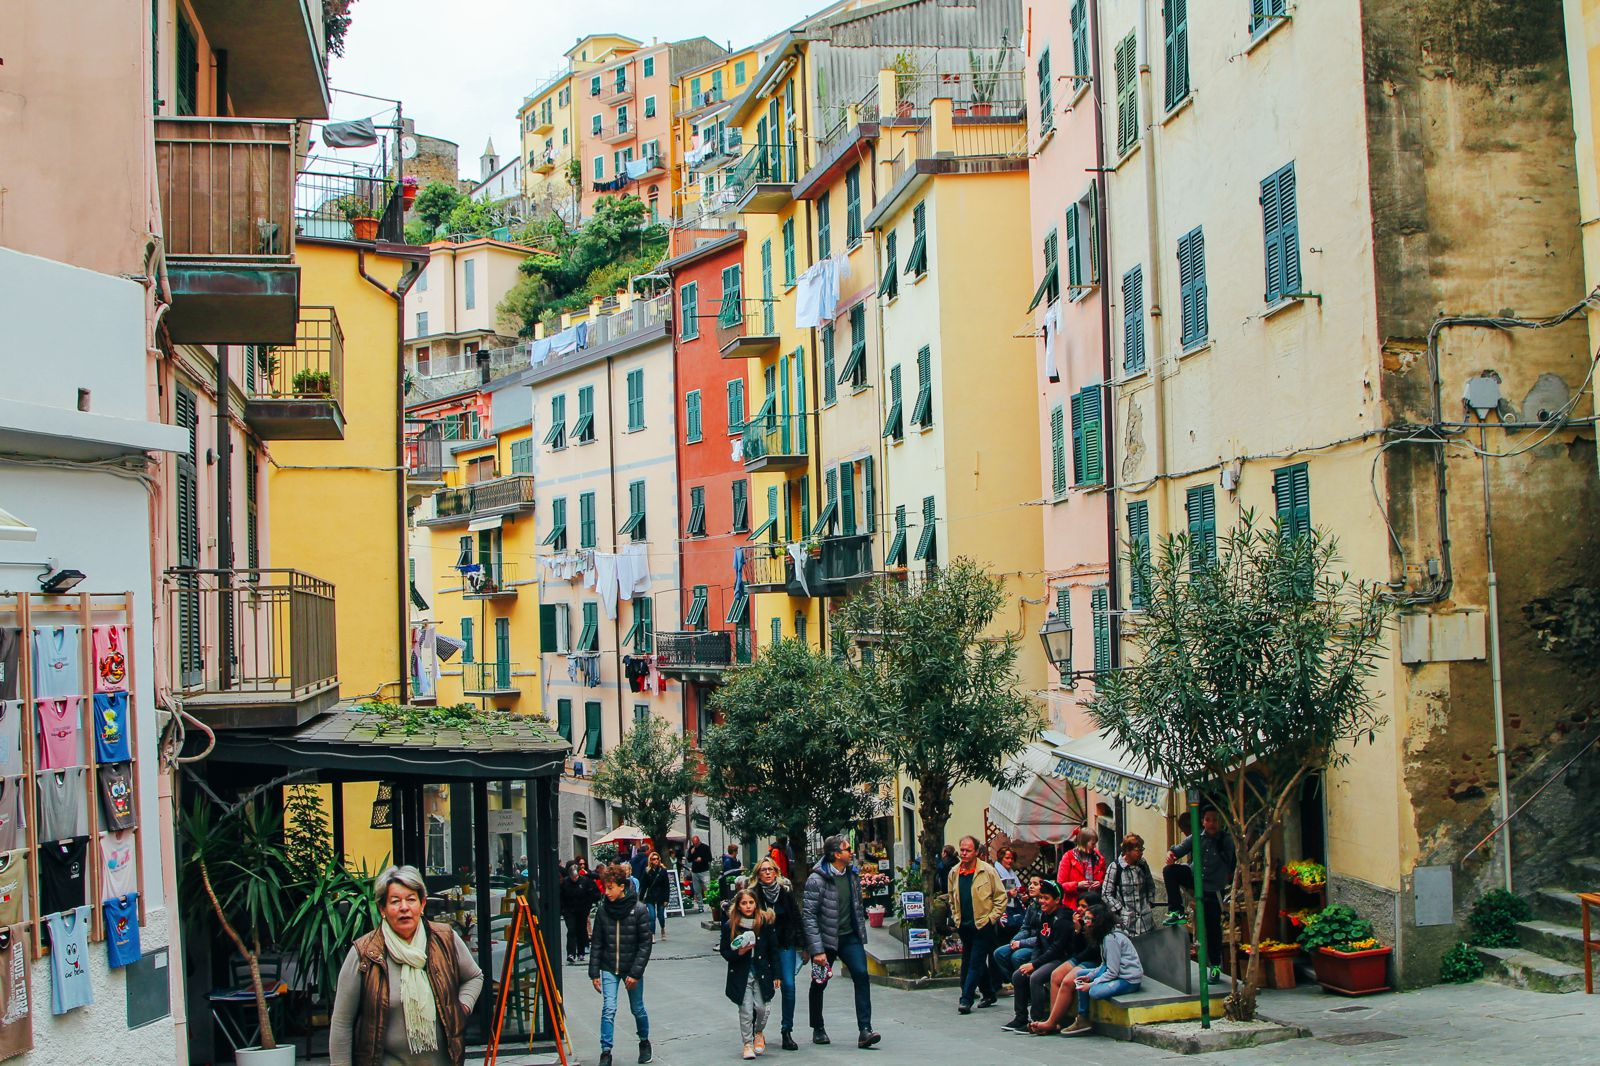 Riomaggiore in Cinque Terre, Italy - The Photo Diary! [1 of 5] (19)